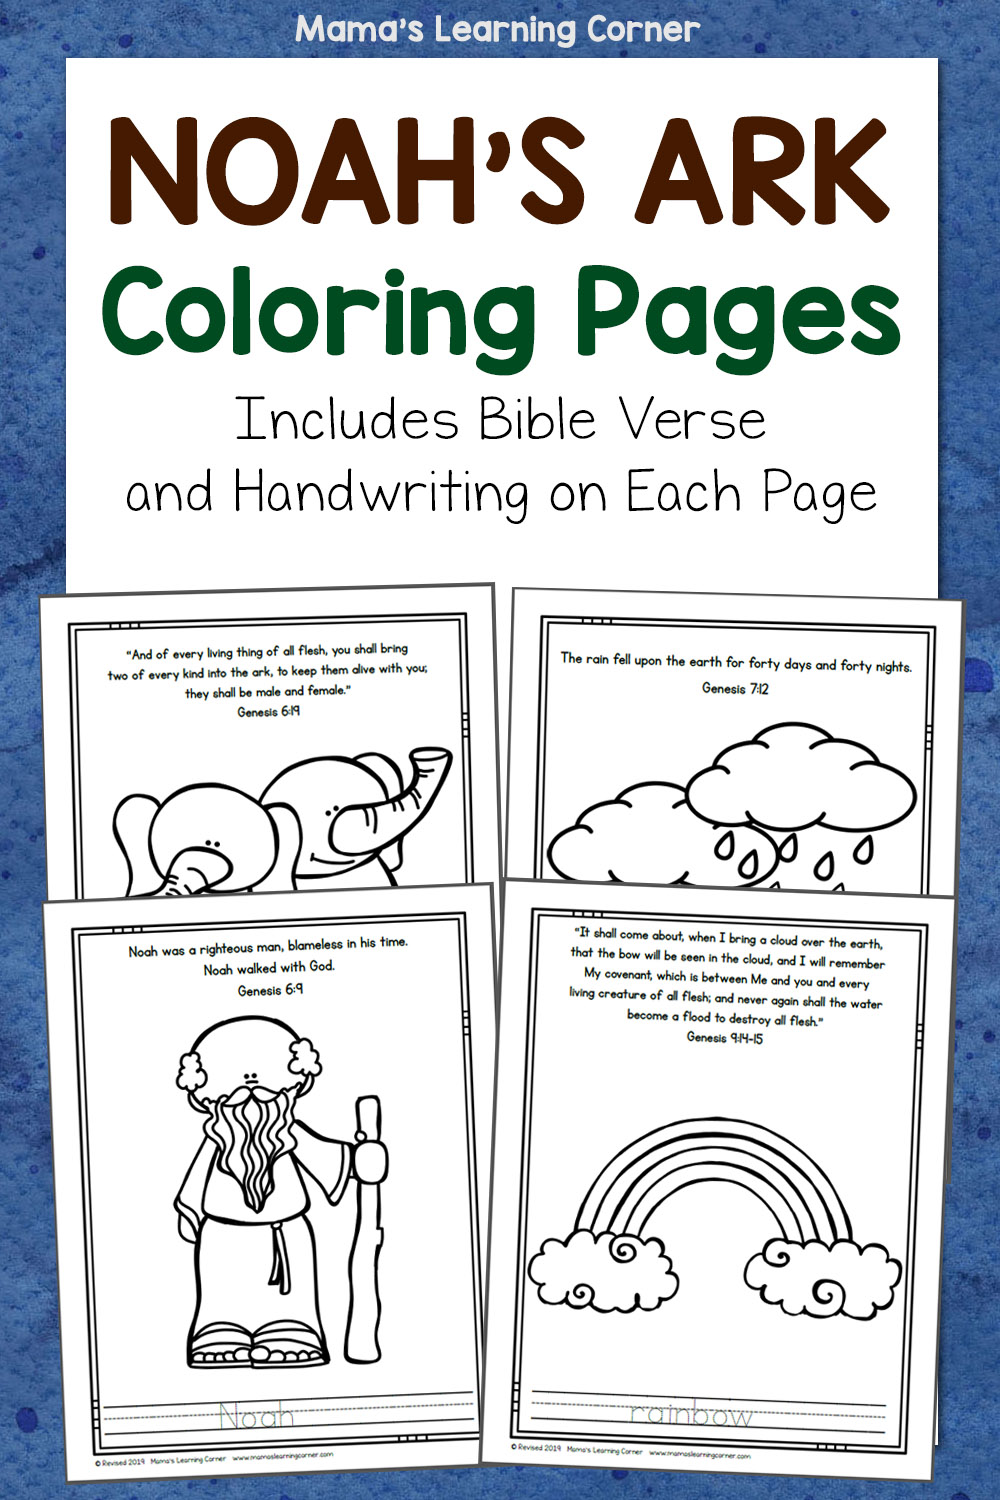 Noah's Ark Coloring Pages - Mamas Learning Corner